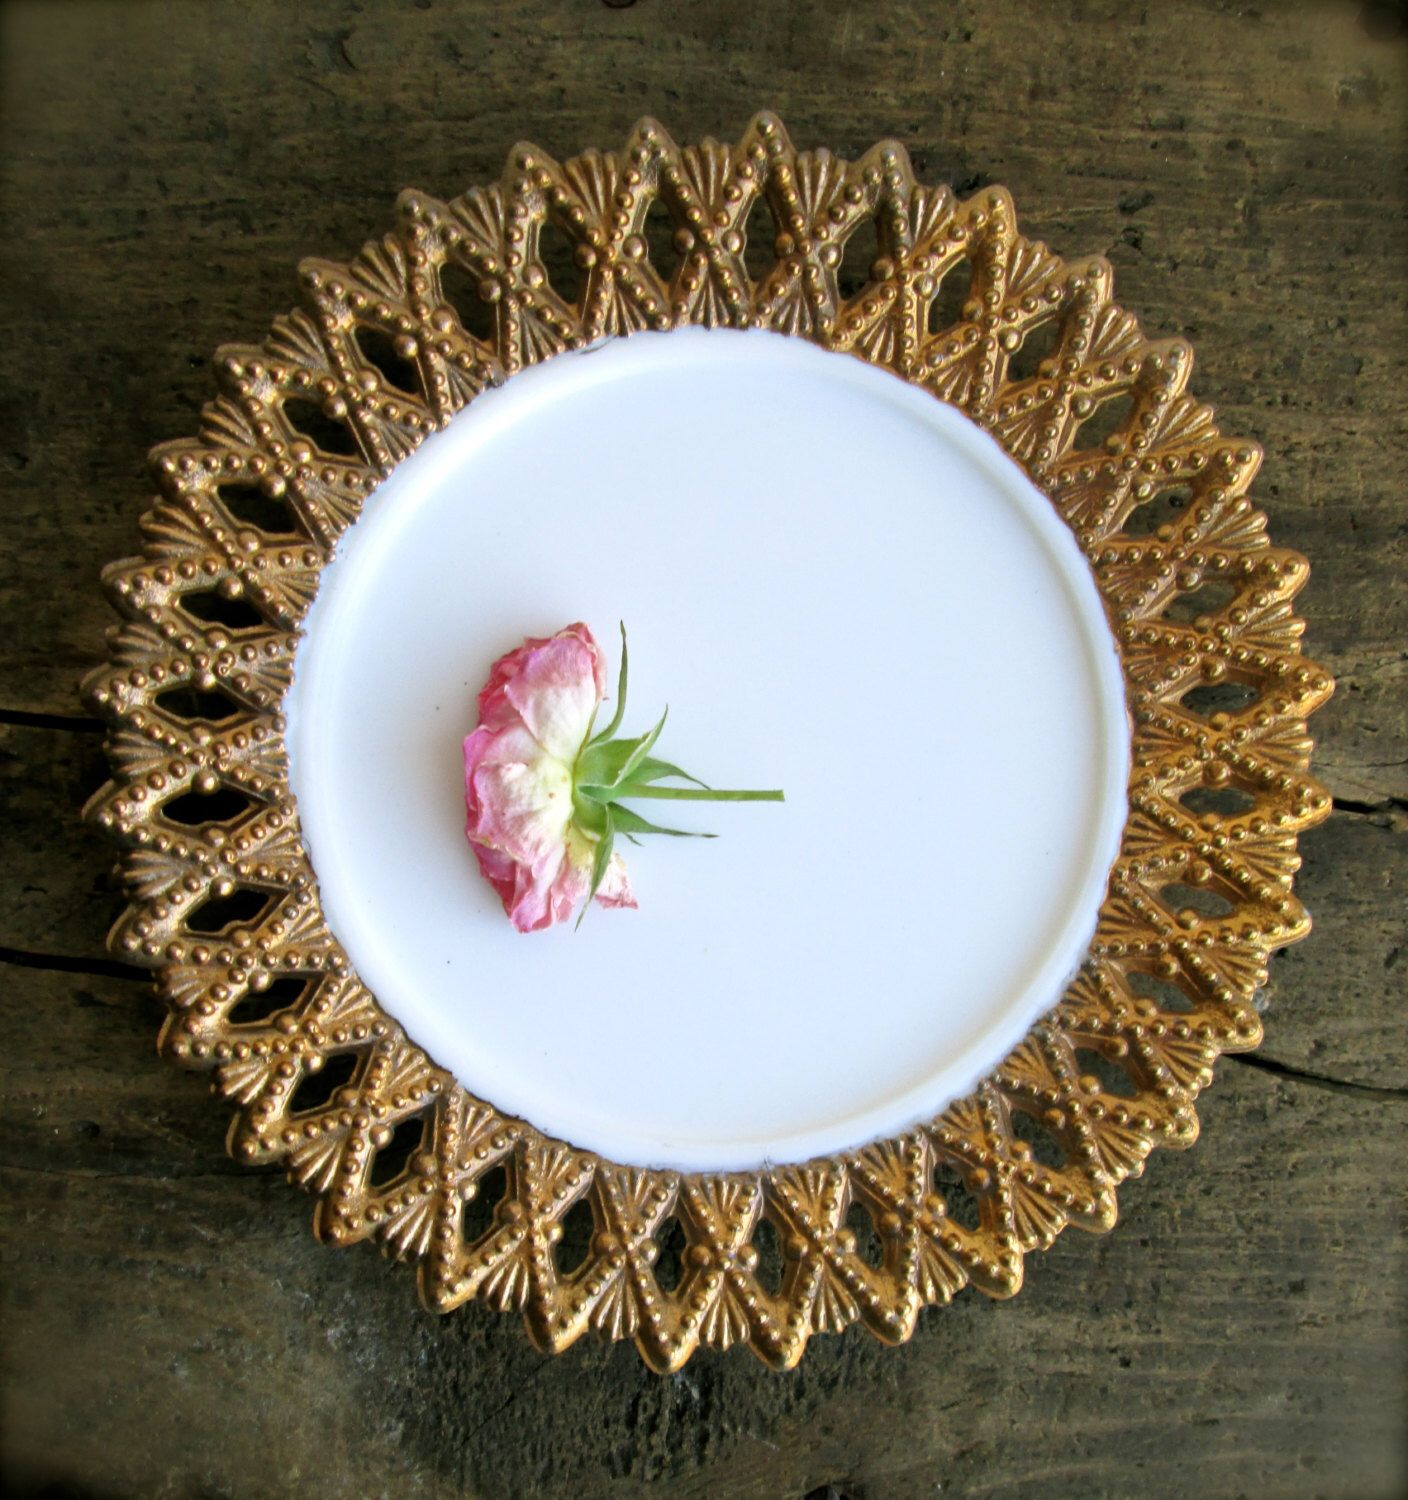 Small Decorative Plates Vintage Milk Glass Plate Gold And White Decorative Plate Home